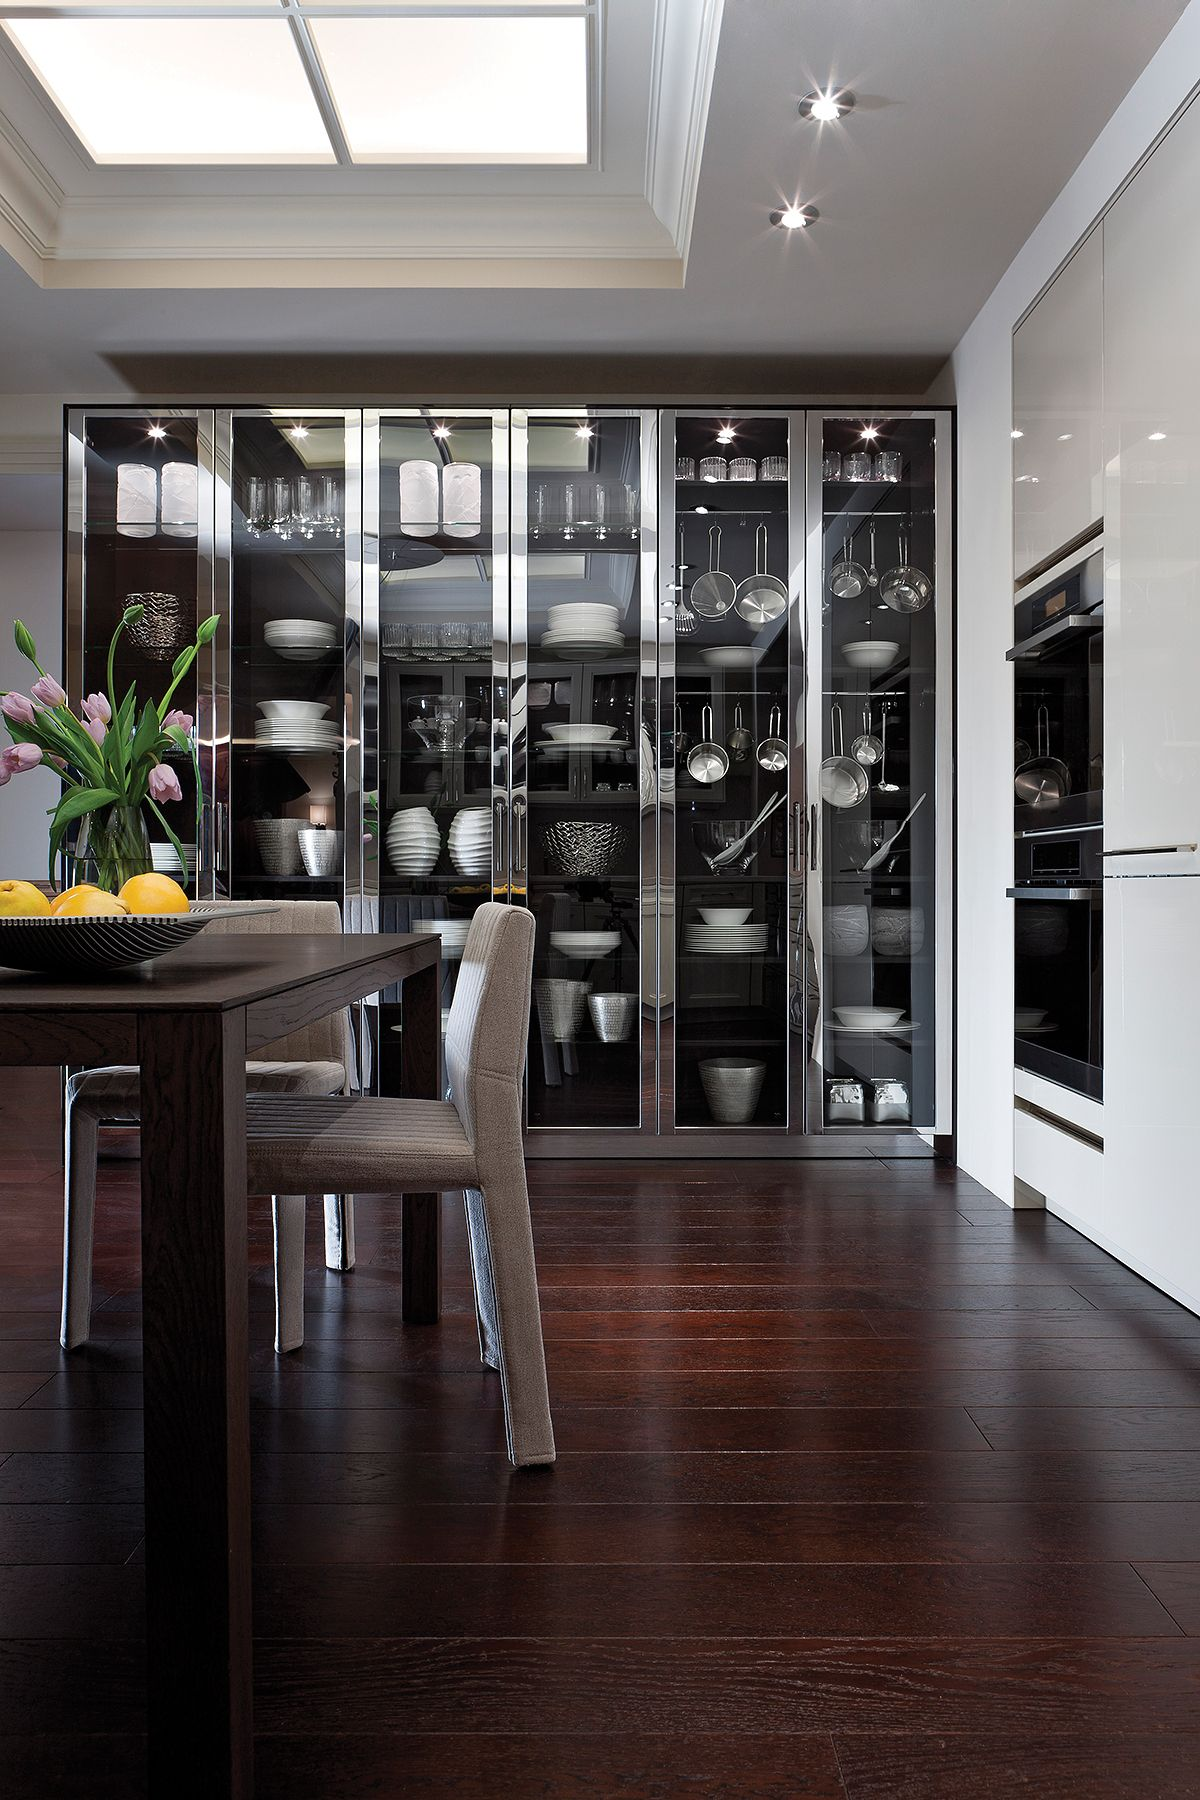 Polished Chrome And Glass Cabinets Provide A Stunning Storage Solution From Siematic S Beaux House Beautiful Kitchens Eclectic Kitchen Design Eclectic Kitchen